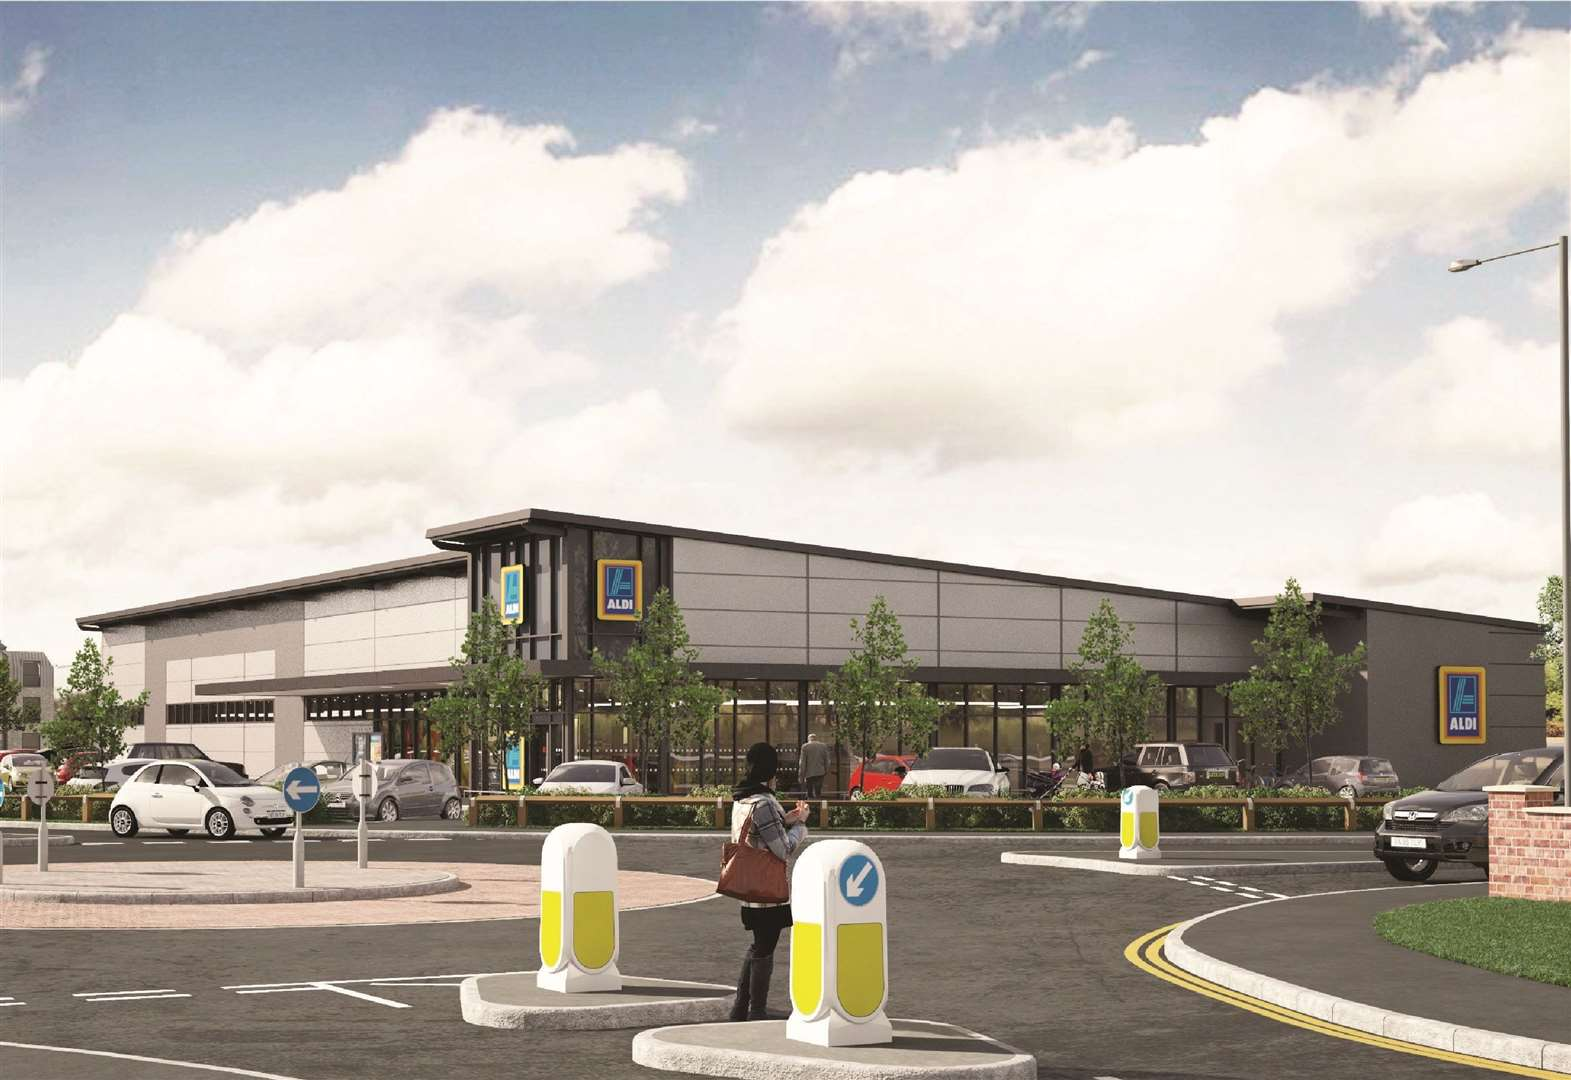 Aldi say their Newmarket store is set to open 'next year' but refuse to confirm May 28 as the date